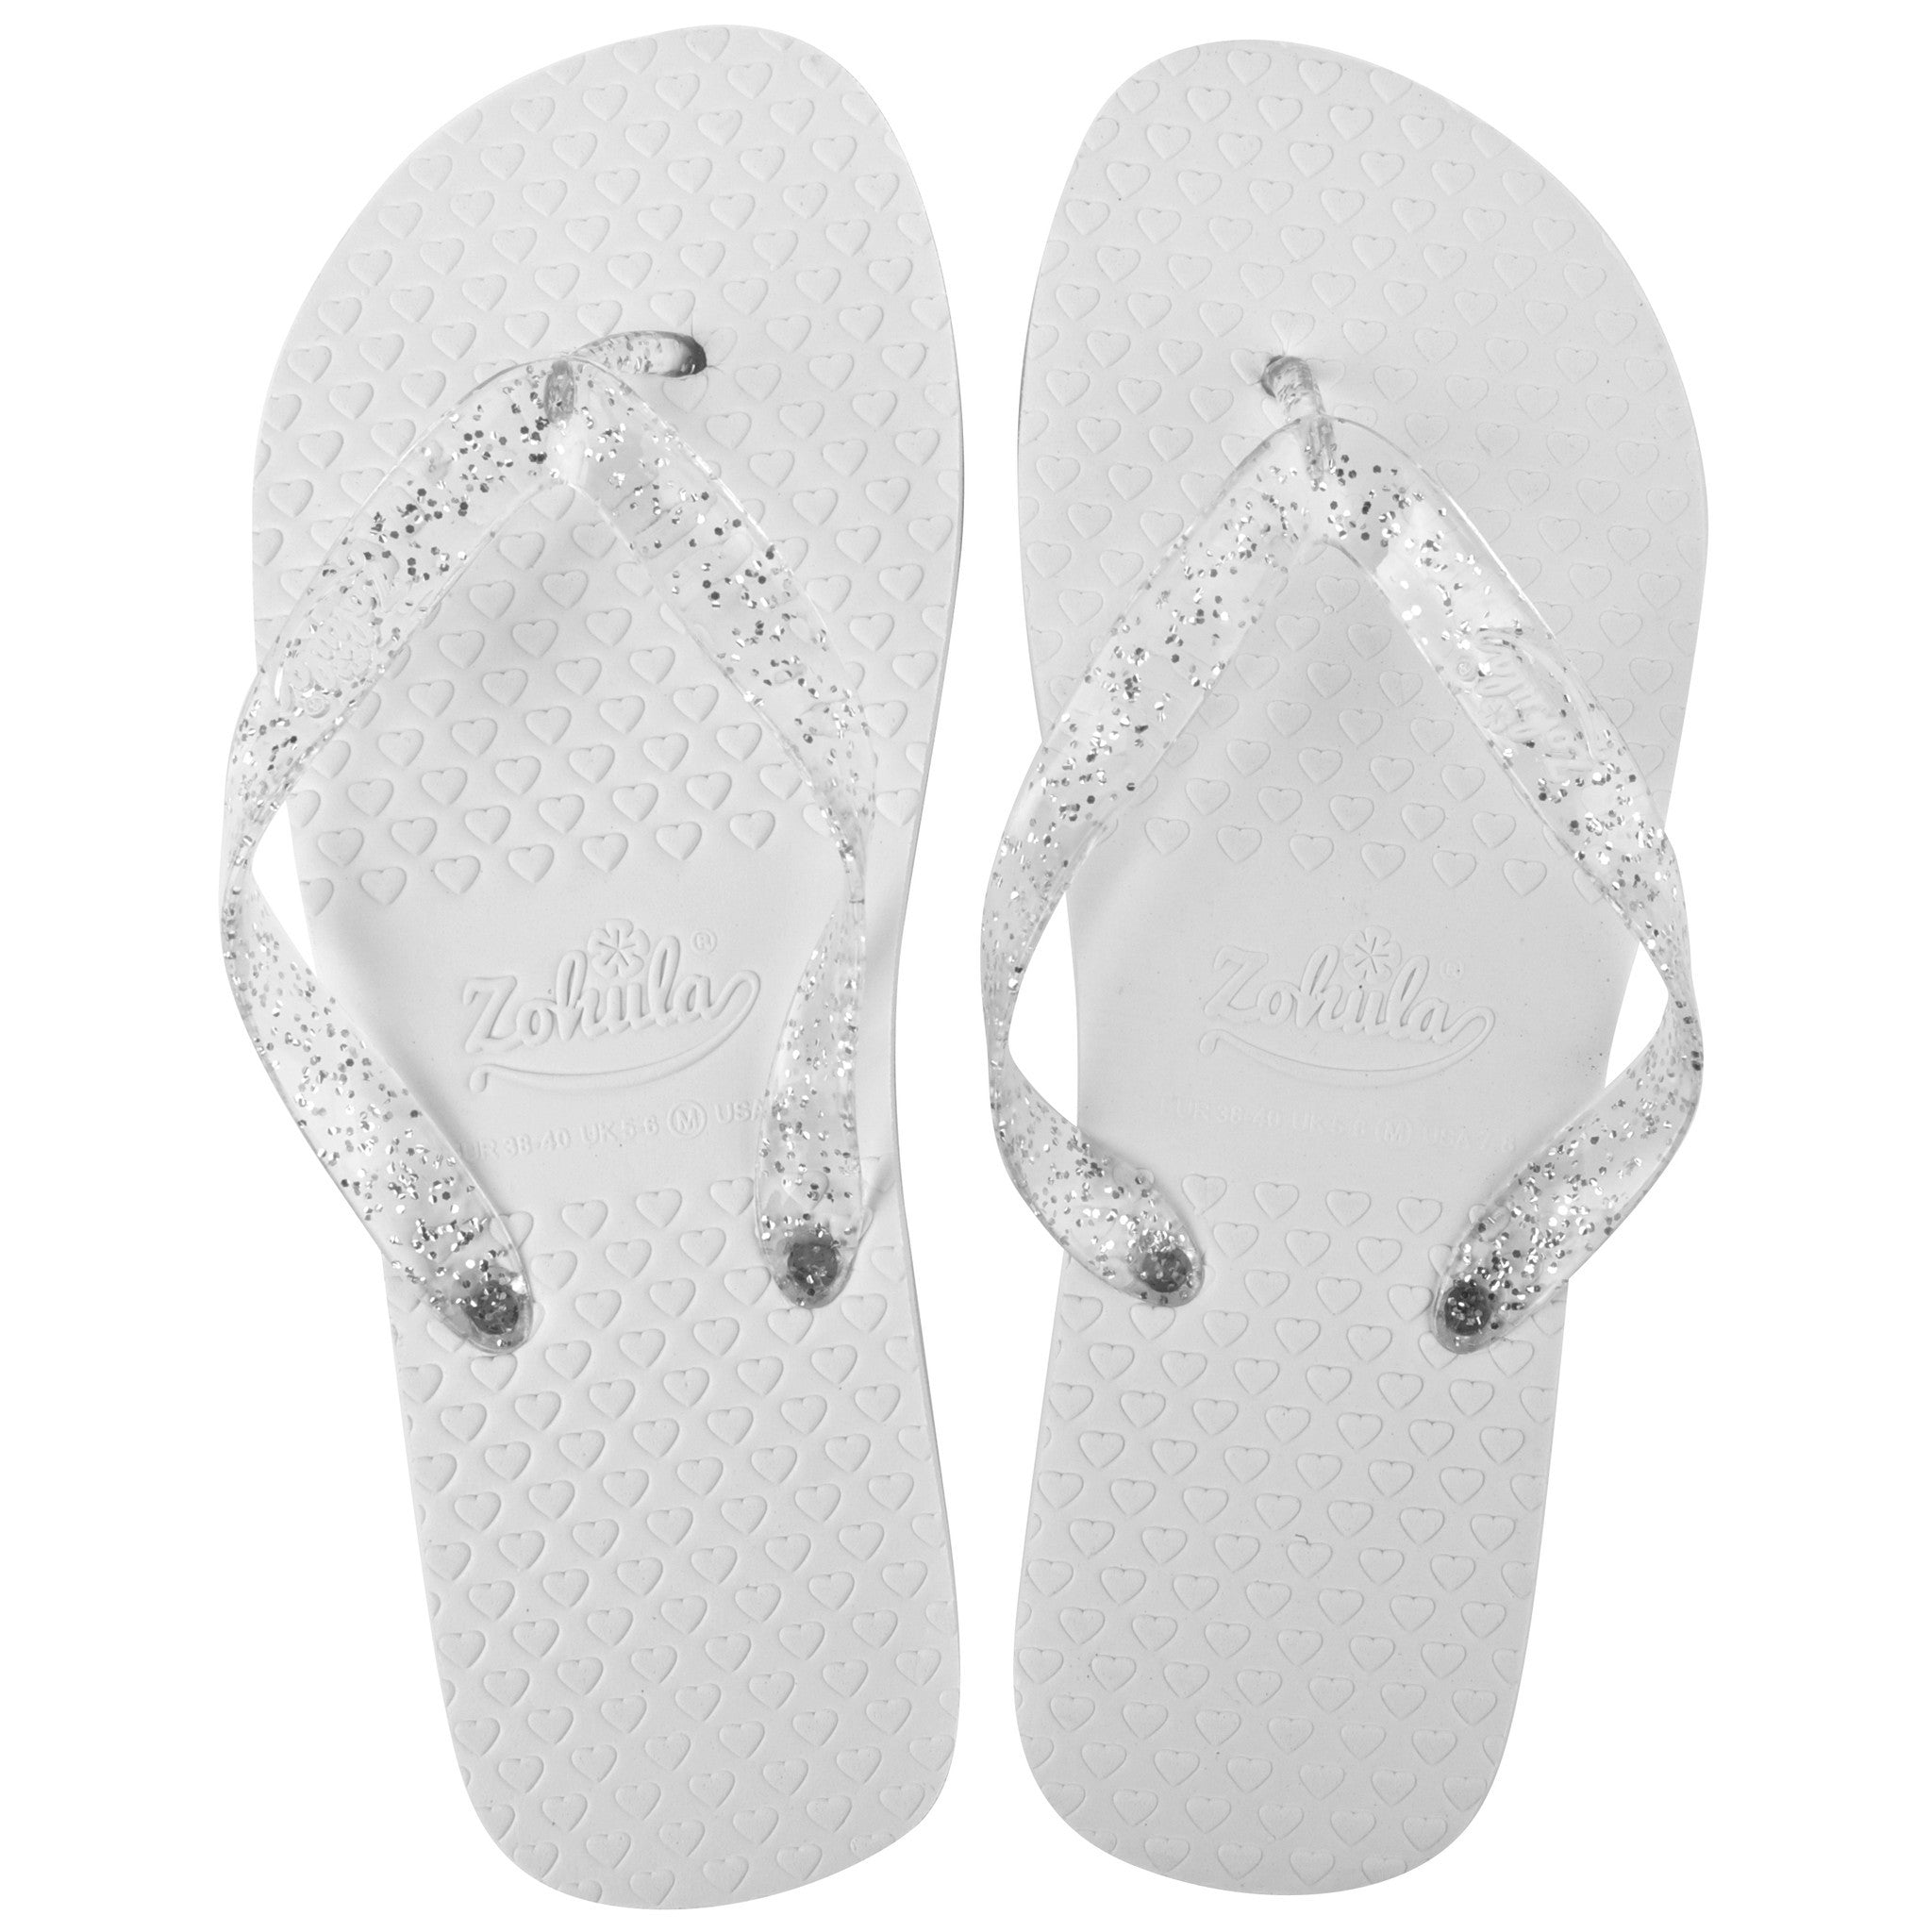 1d2ca77c436 Zohula White Wedding Flip Flops - Party Pack